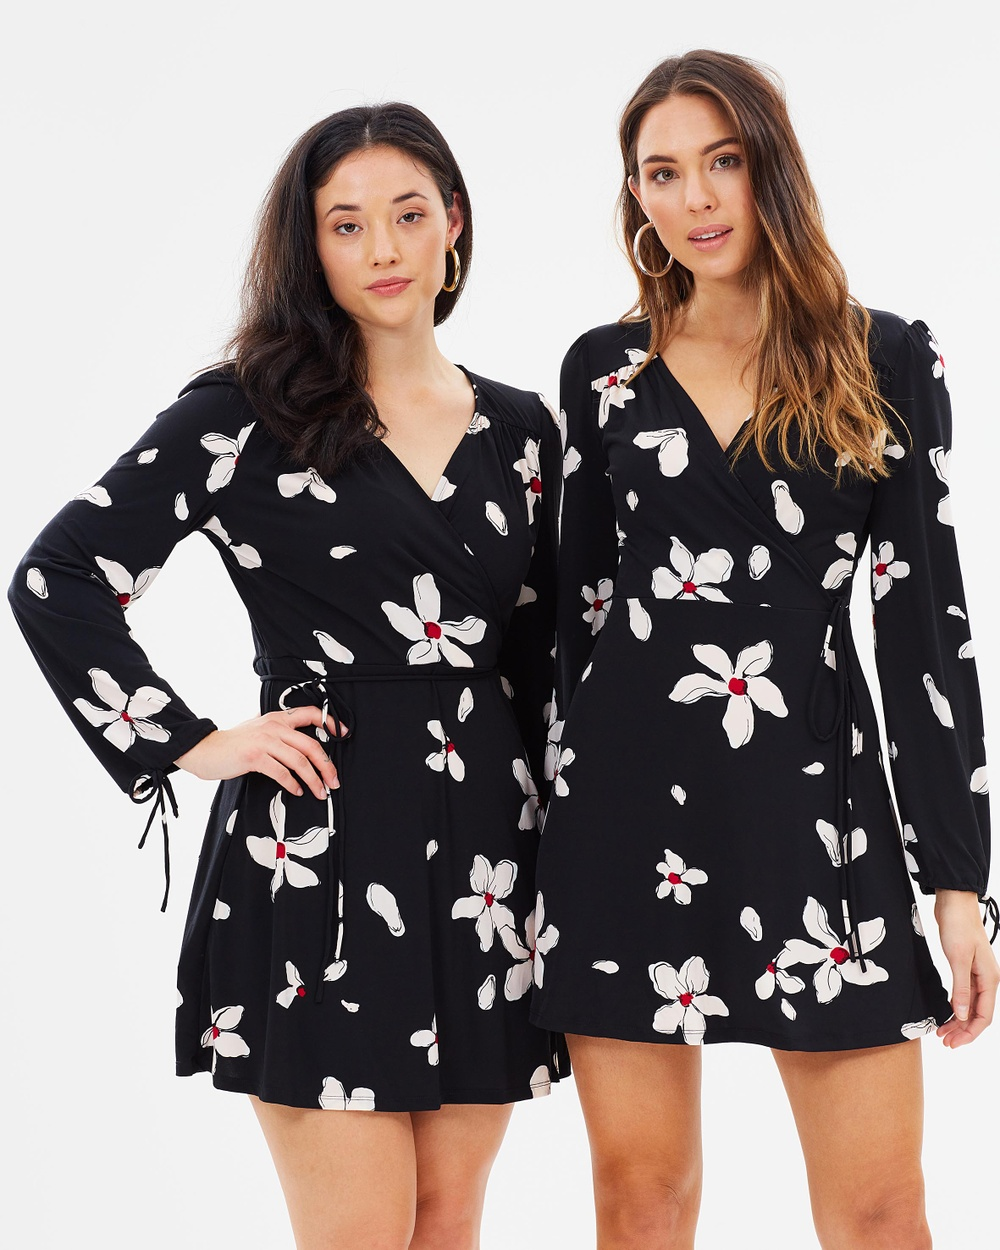 M.N.G Floral Wrap Front Long Sleeve Dress Printed Dresses Rosa Floral Wrap Front Long Sleeve Dress